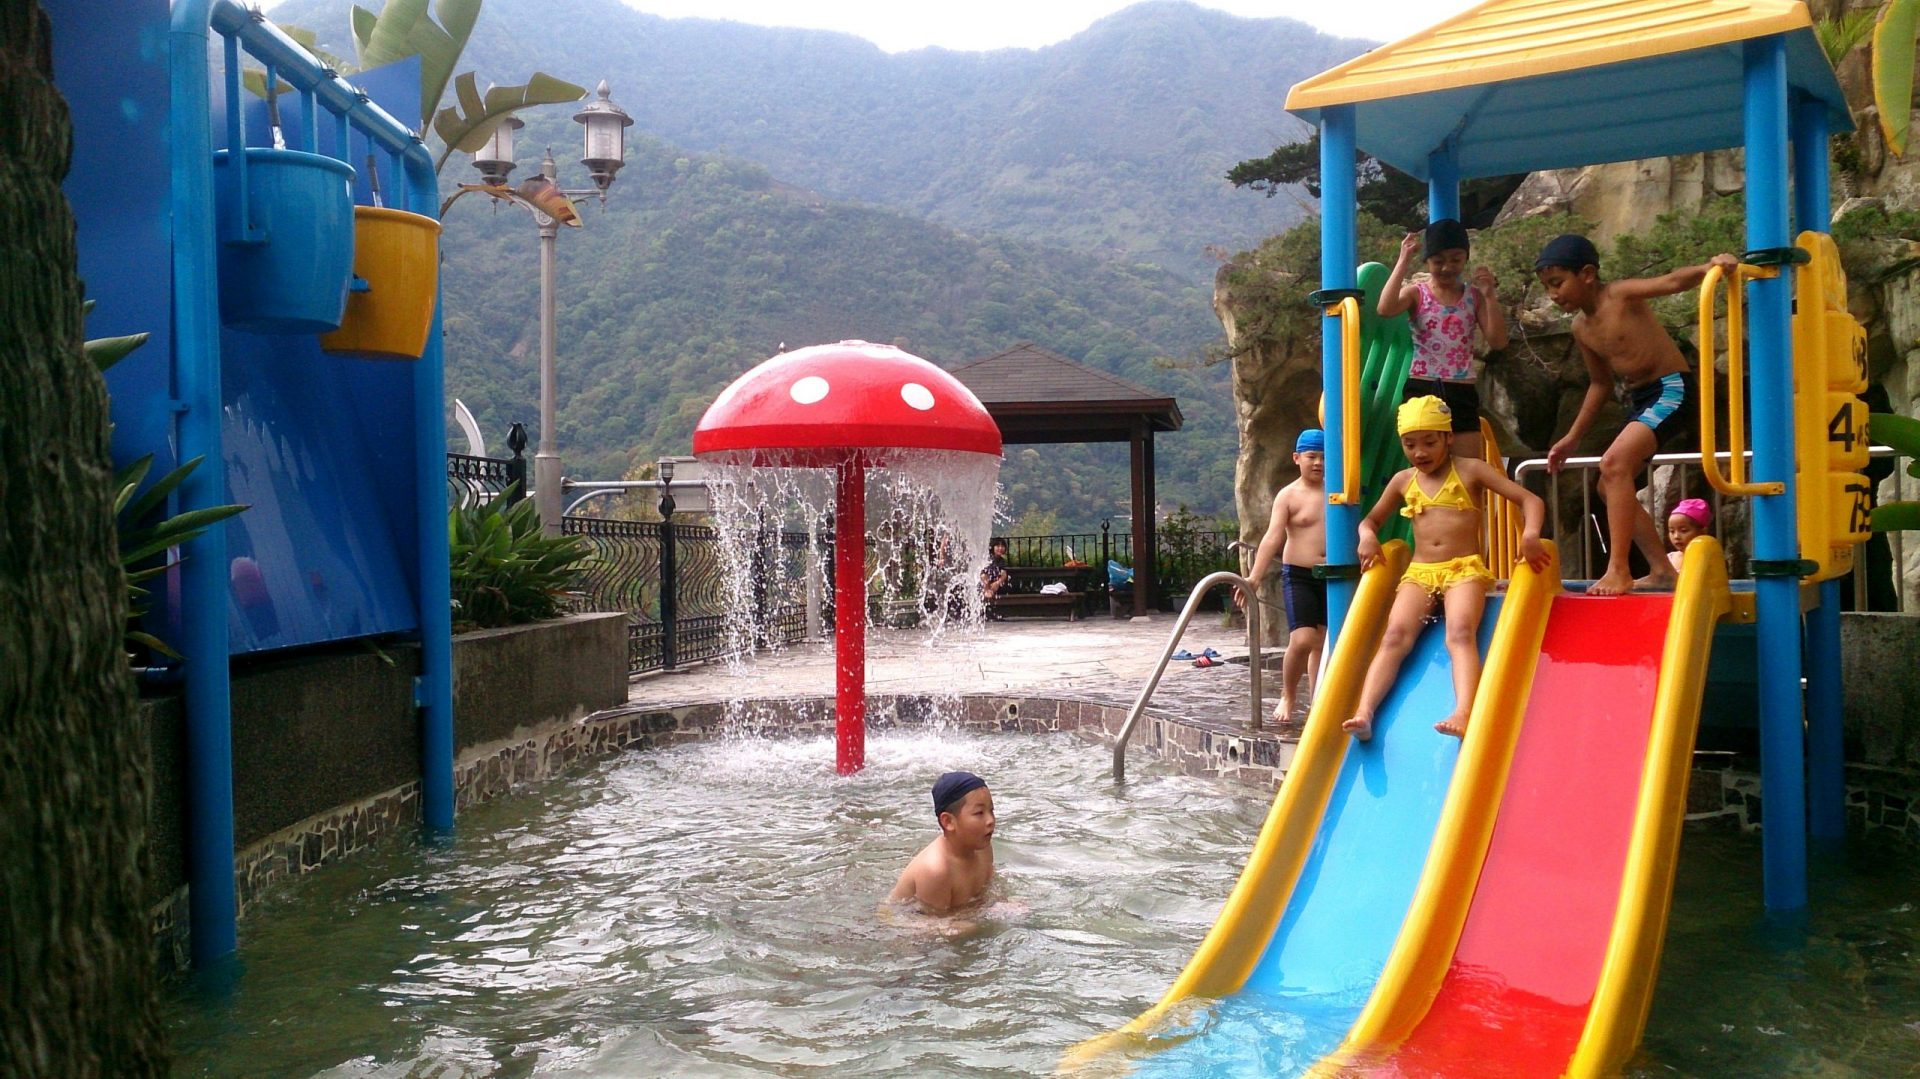 There are diverse hot spring pools at hotels in the Dongpu Hot Spring Area. (Image: Courtesy of Hotel Tilun Dongpu Spa )